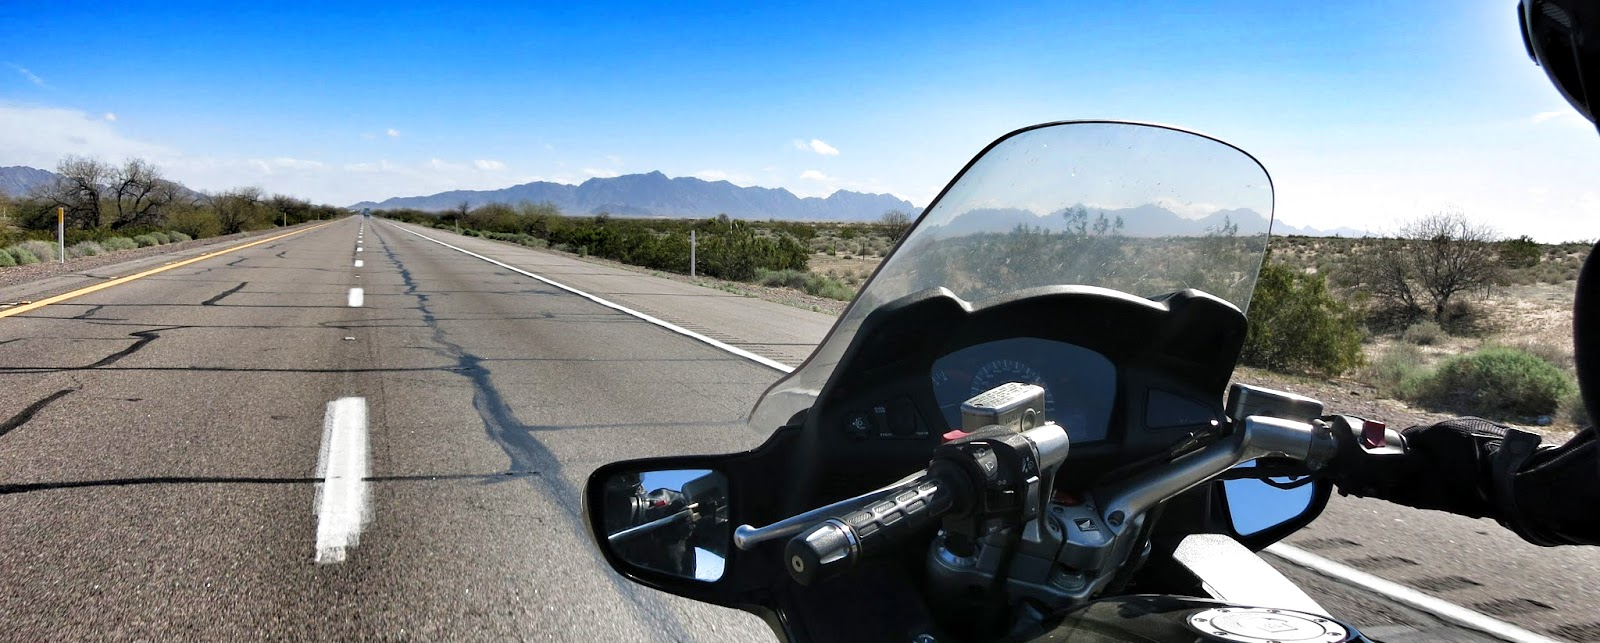 riding a motorcycle on the interstate